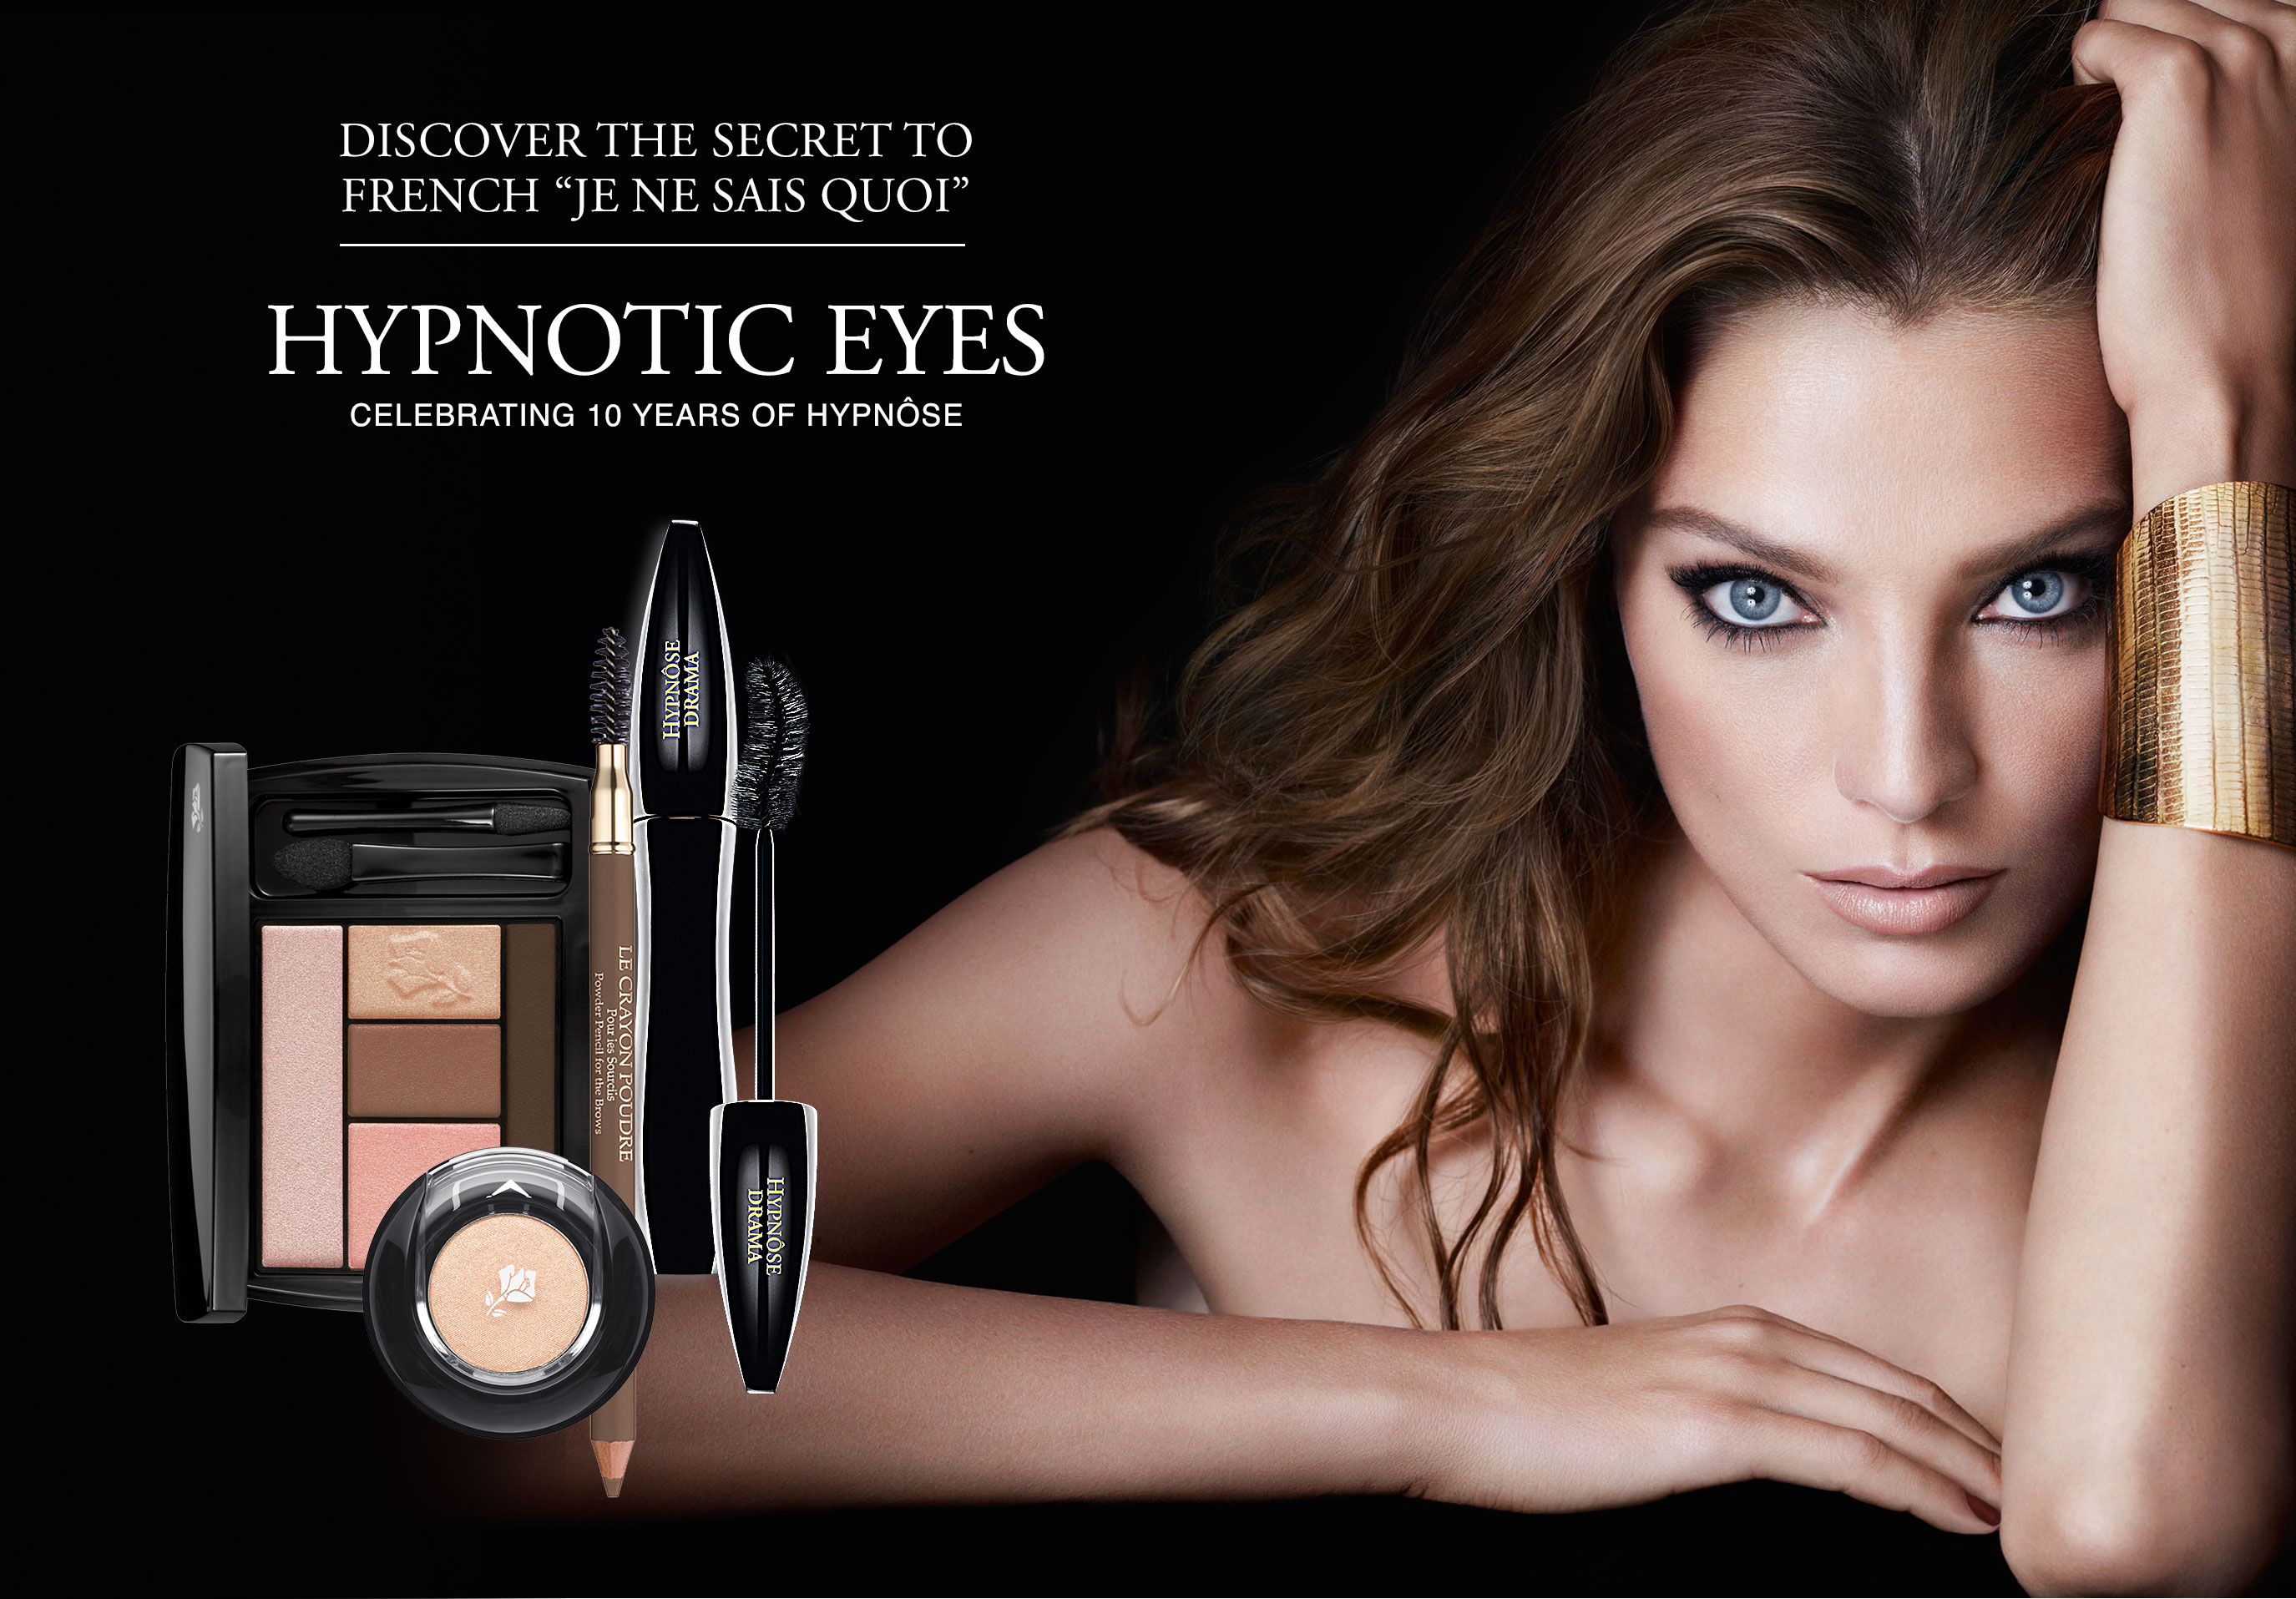 Hypnotic lancome eyes spring makeup collection